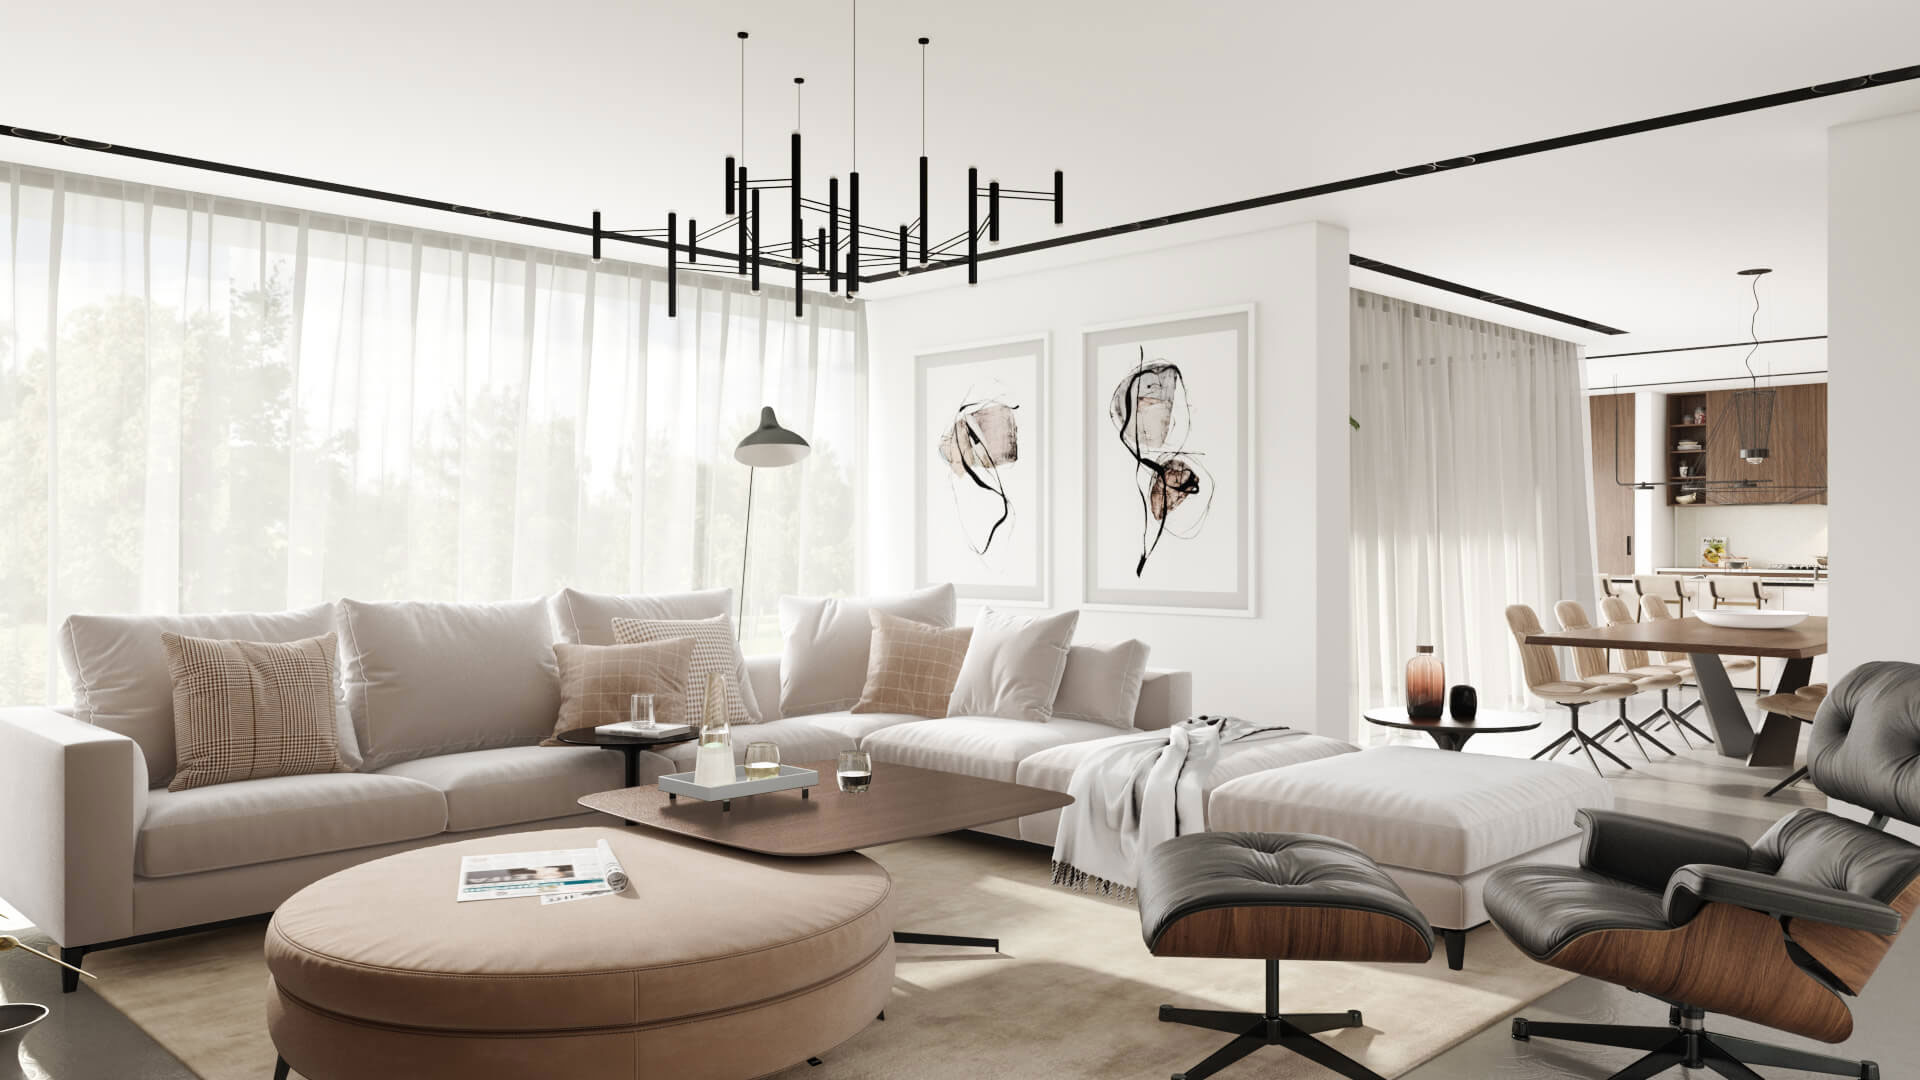 A 3D Image of a Neutral Living Room